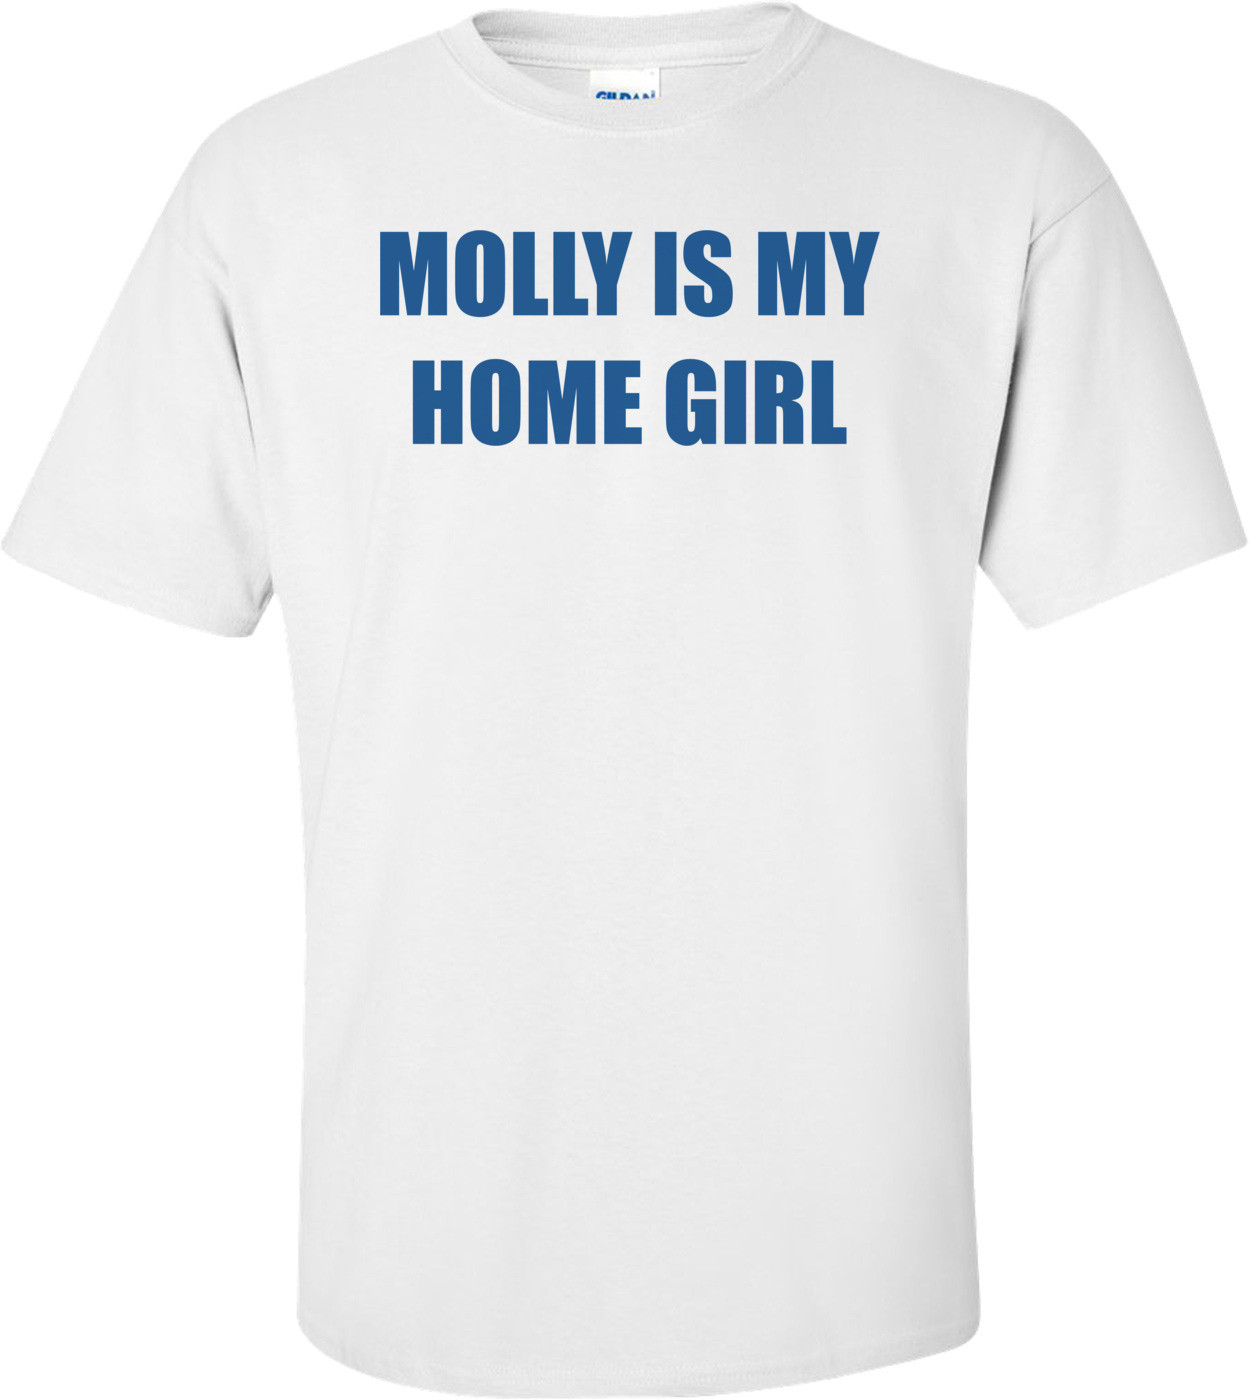 MOLLY IS MY HOME GIRL Shirt